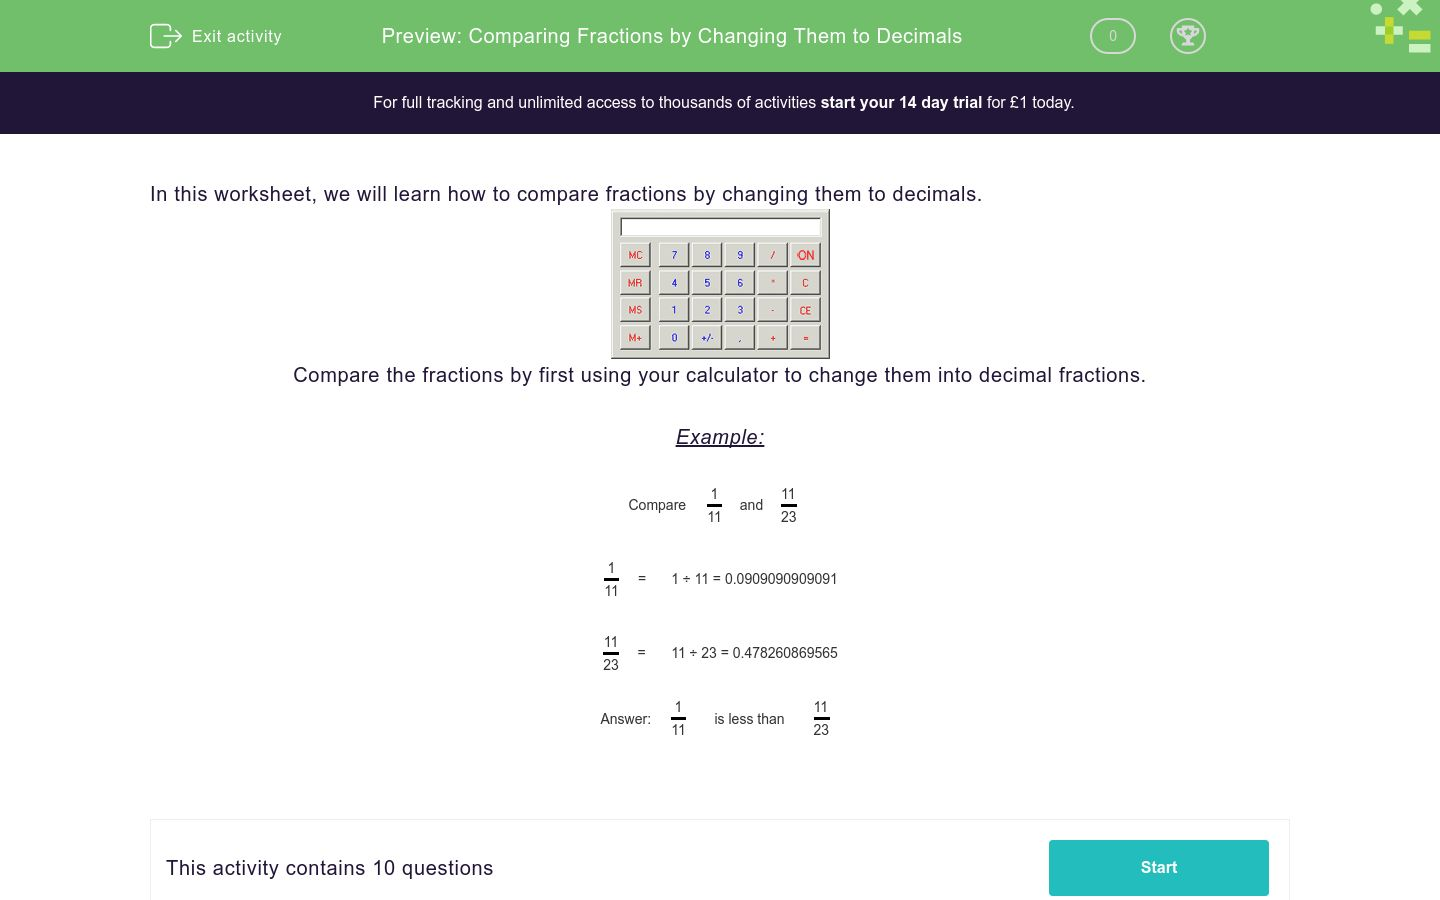 'Comparing Fractions by Changing Them to Decimals' worksheet